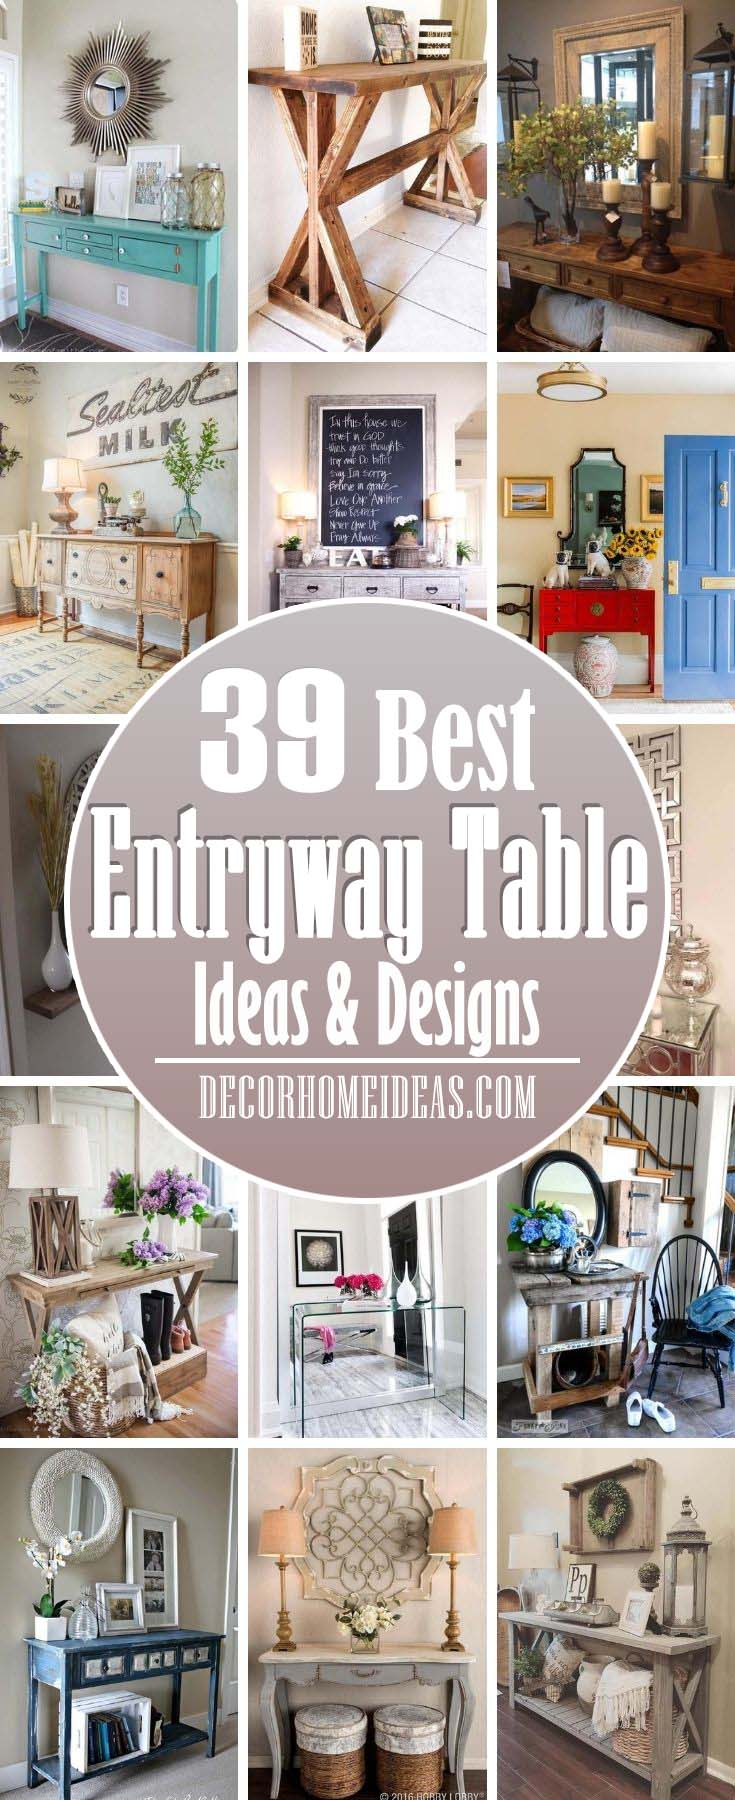 37 Amazing Entry Table Ideas To Make A Great First Impression Decor Home Ideas